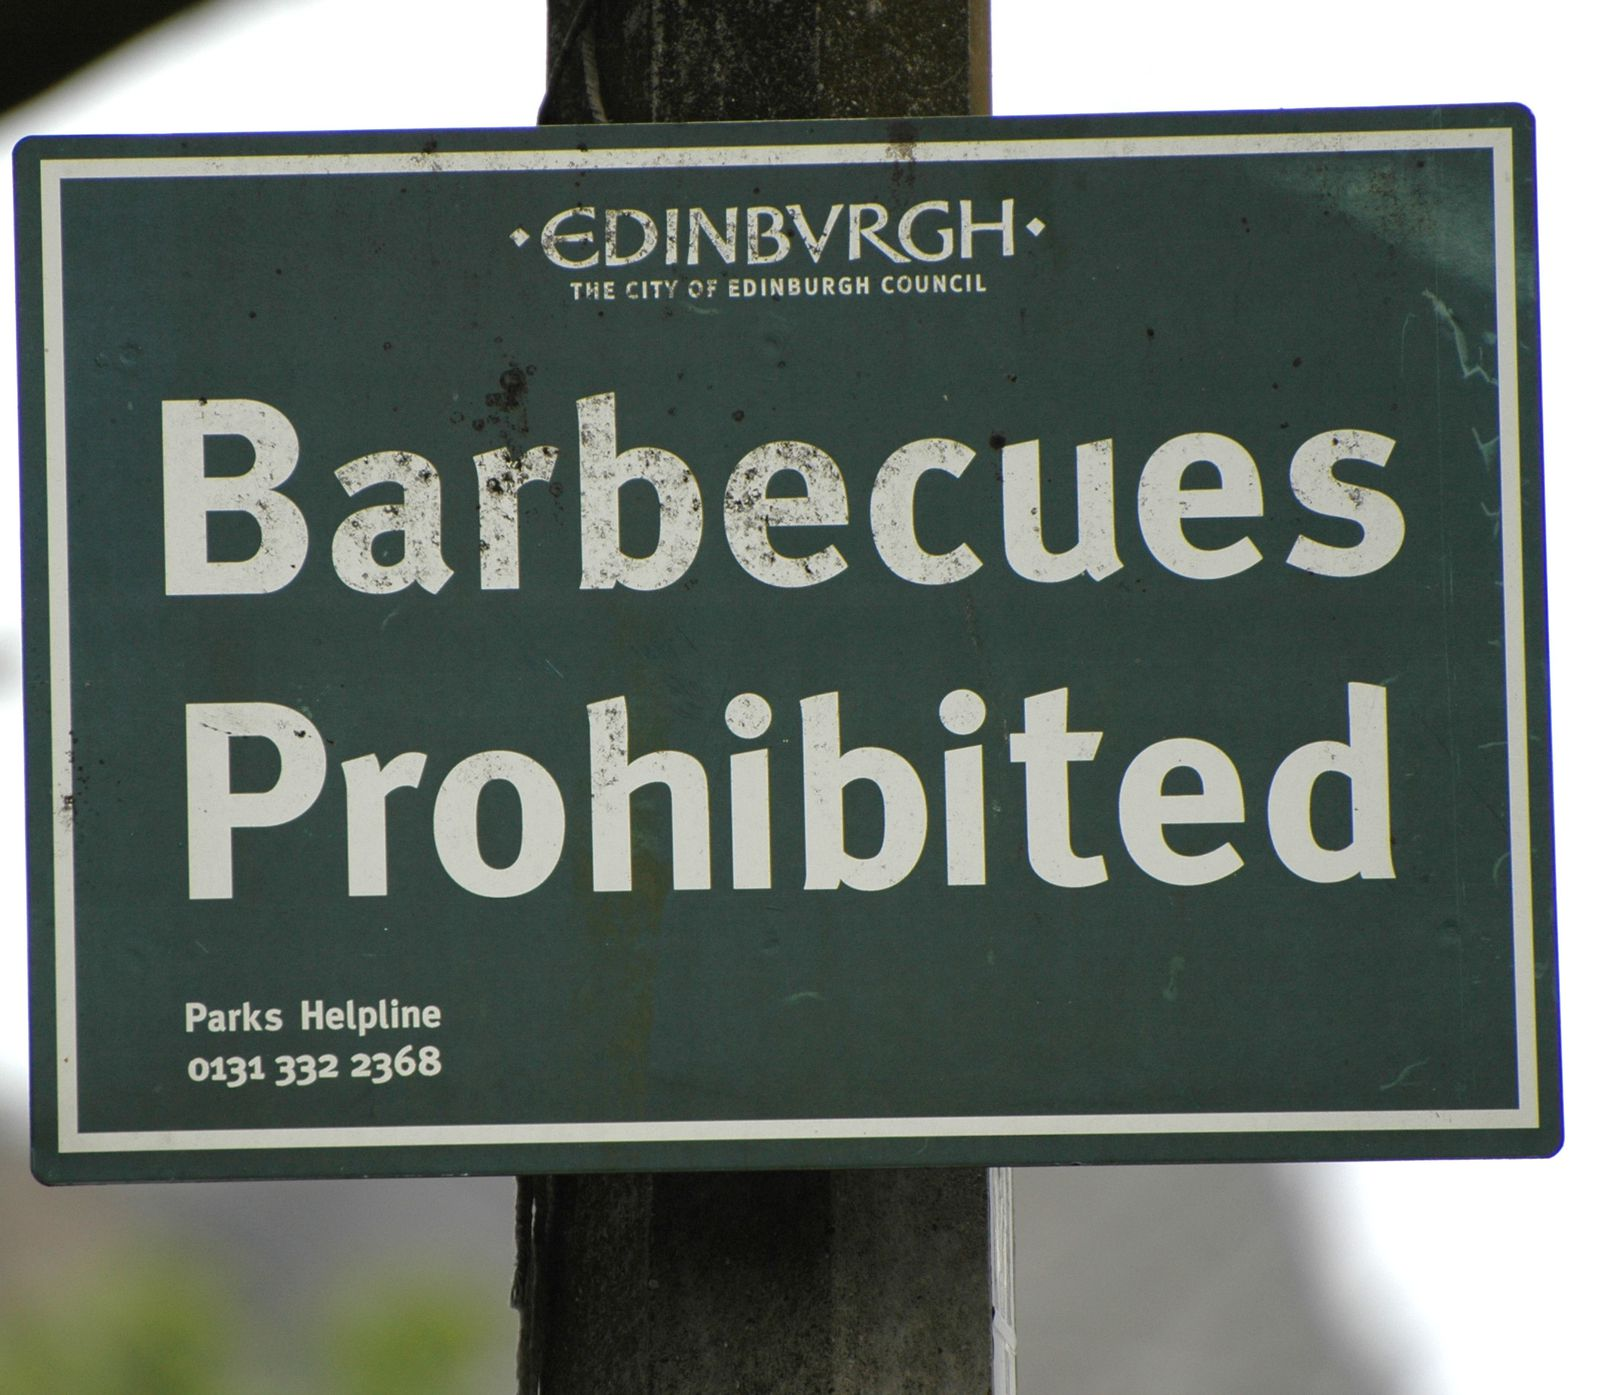 barbecues Prohibited